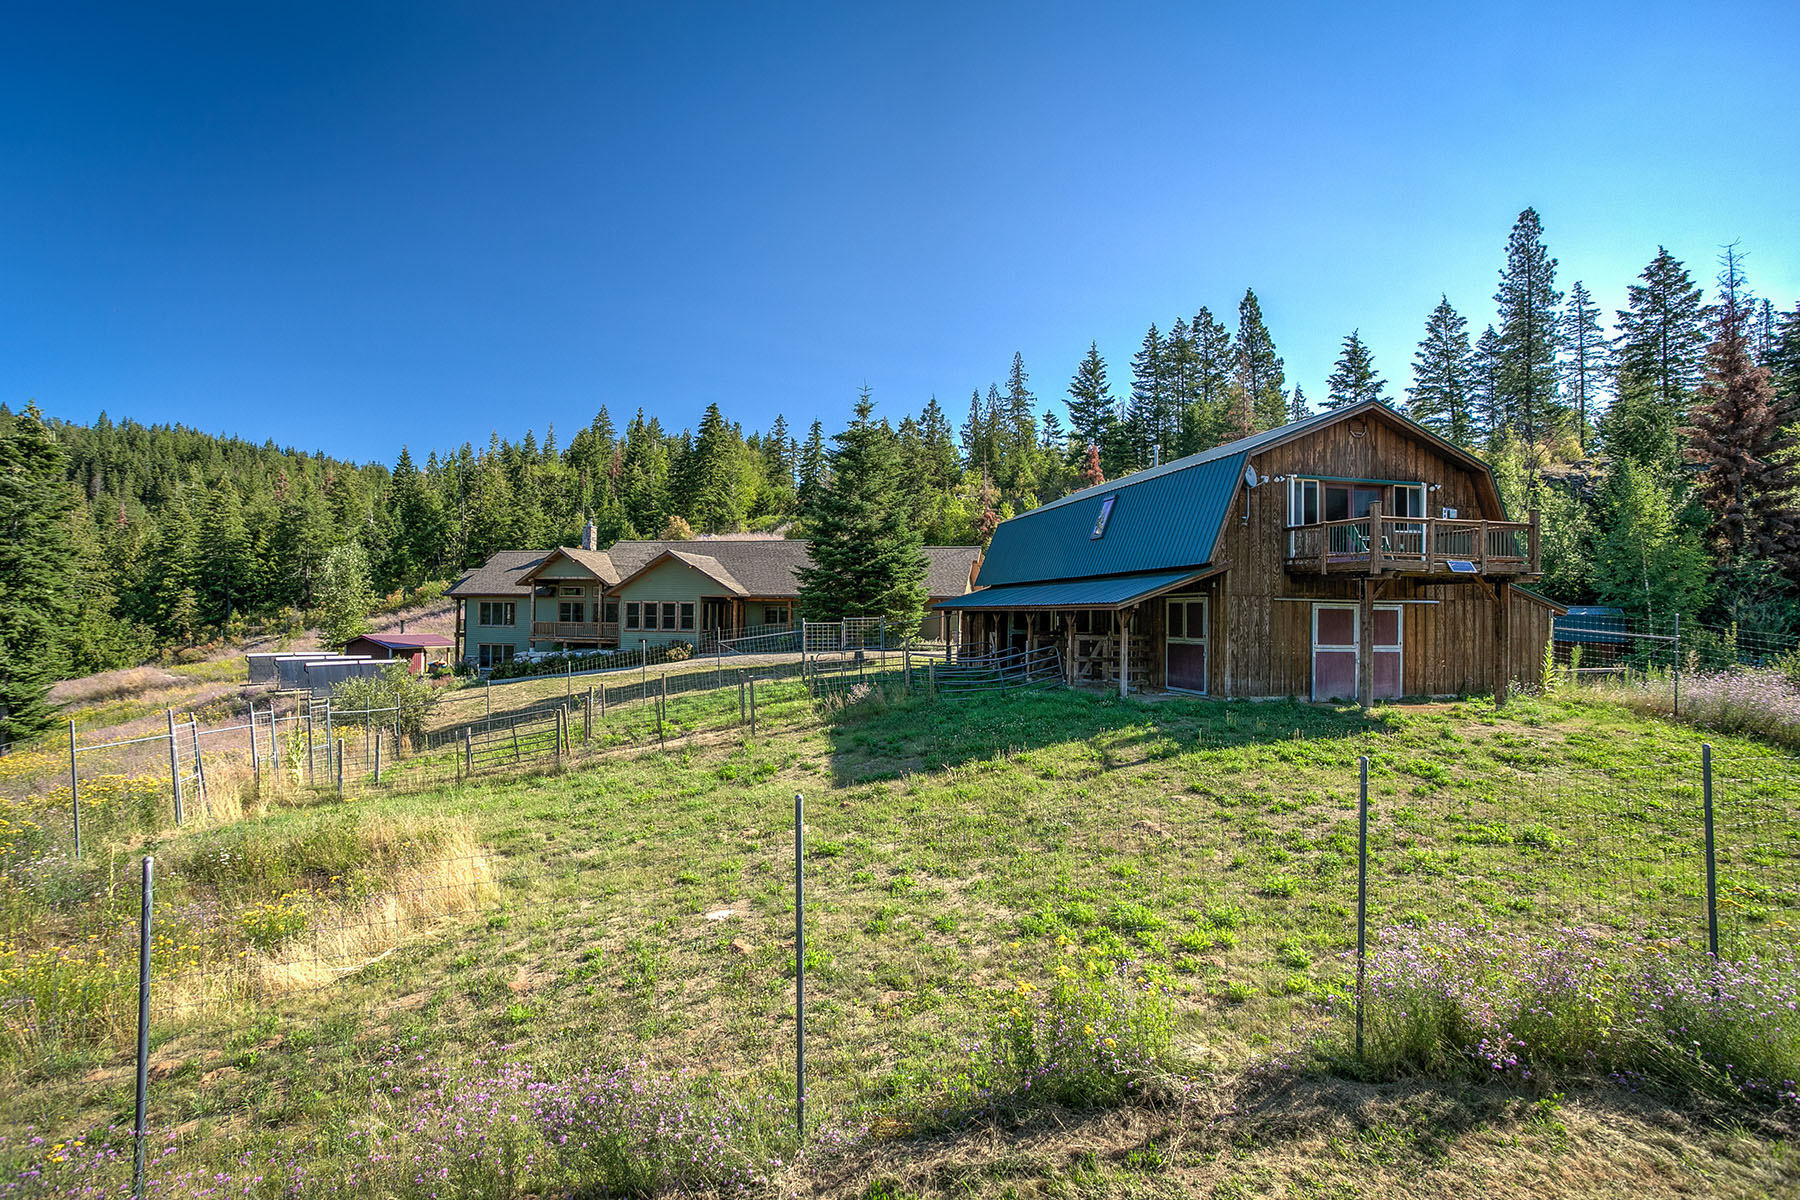 Casa para uma família para Venda às 2 Homes, 3 Cabins & 1 Barn on 320 Acres 0 Trout Creek Ranch Rd Sandpoint, Idaho, 83864 Estados Unidos